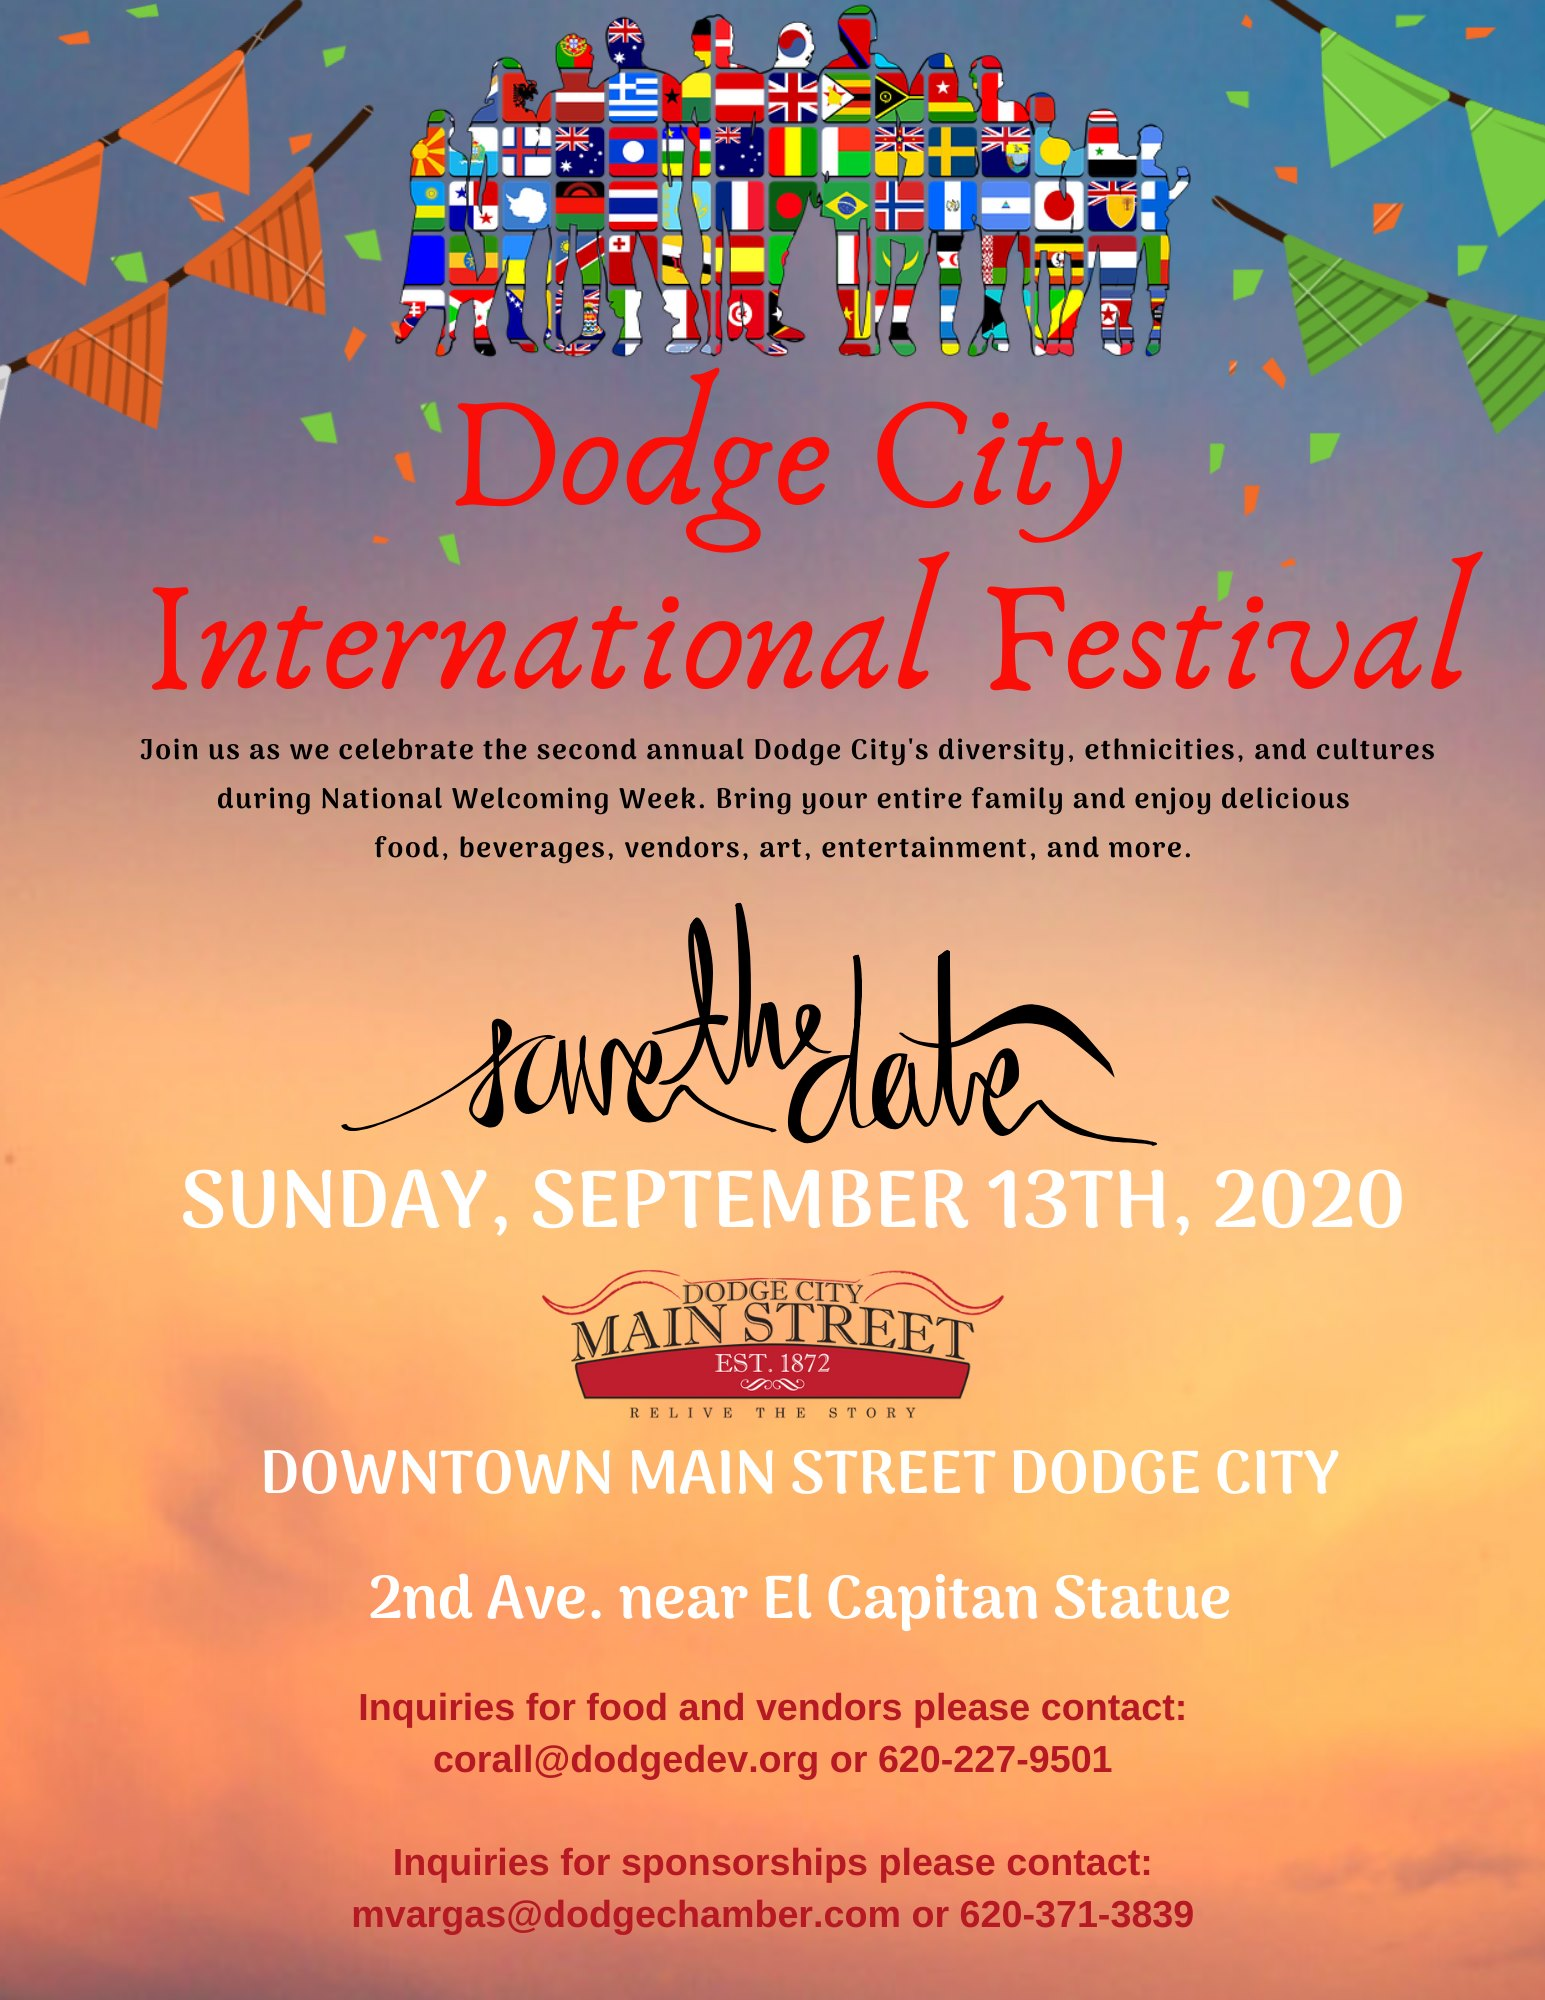 Dodge City International Festival 2020